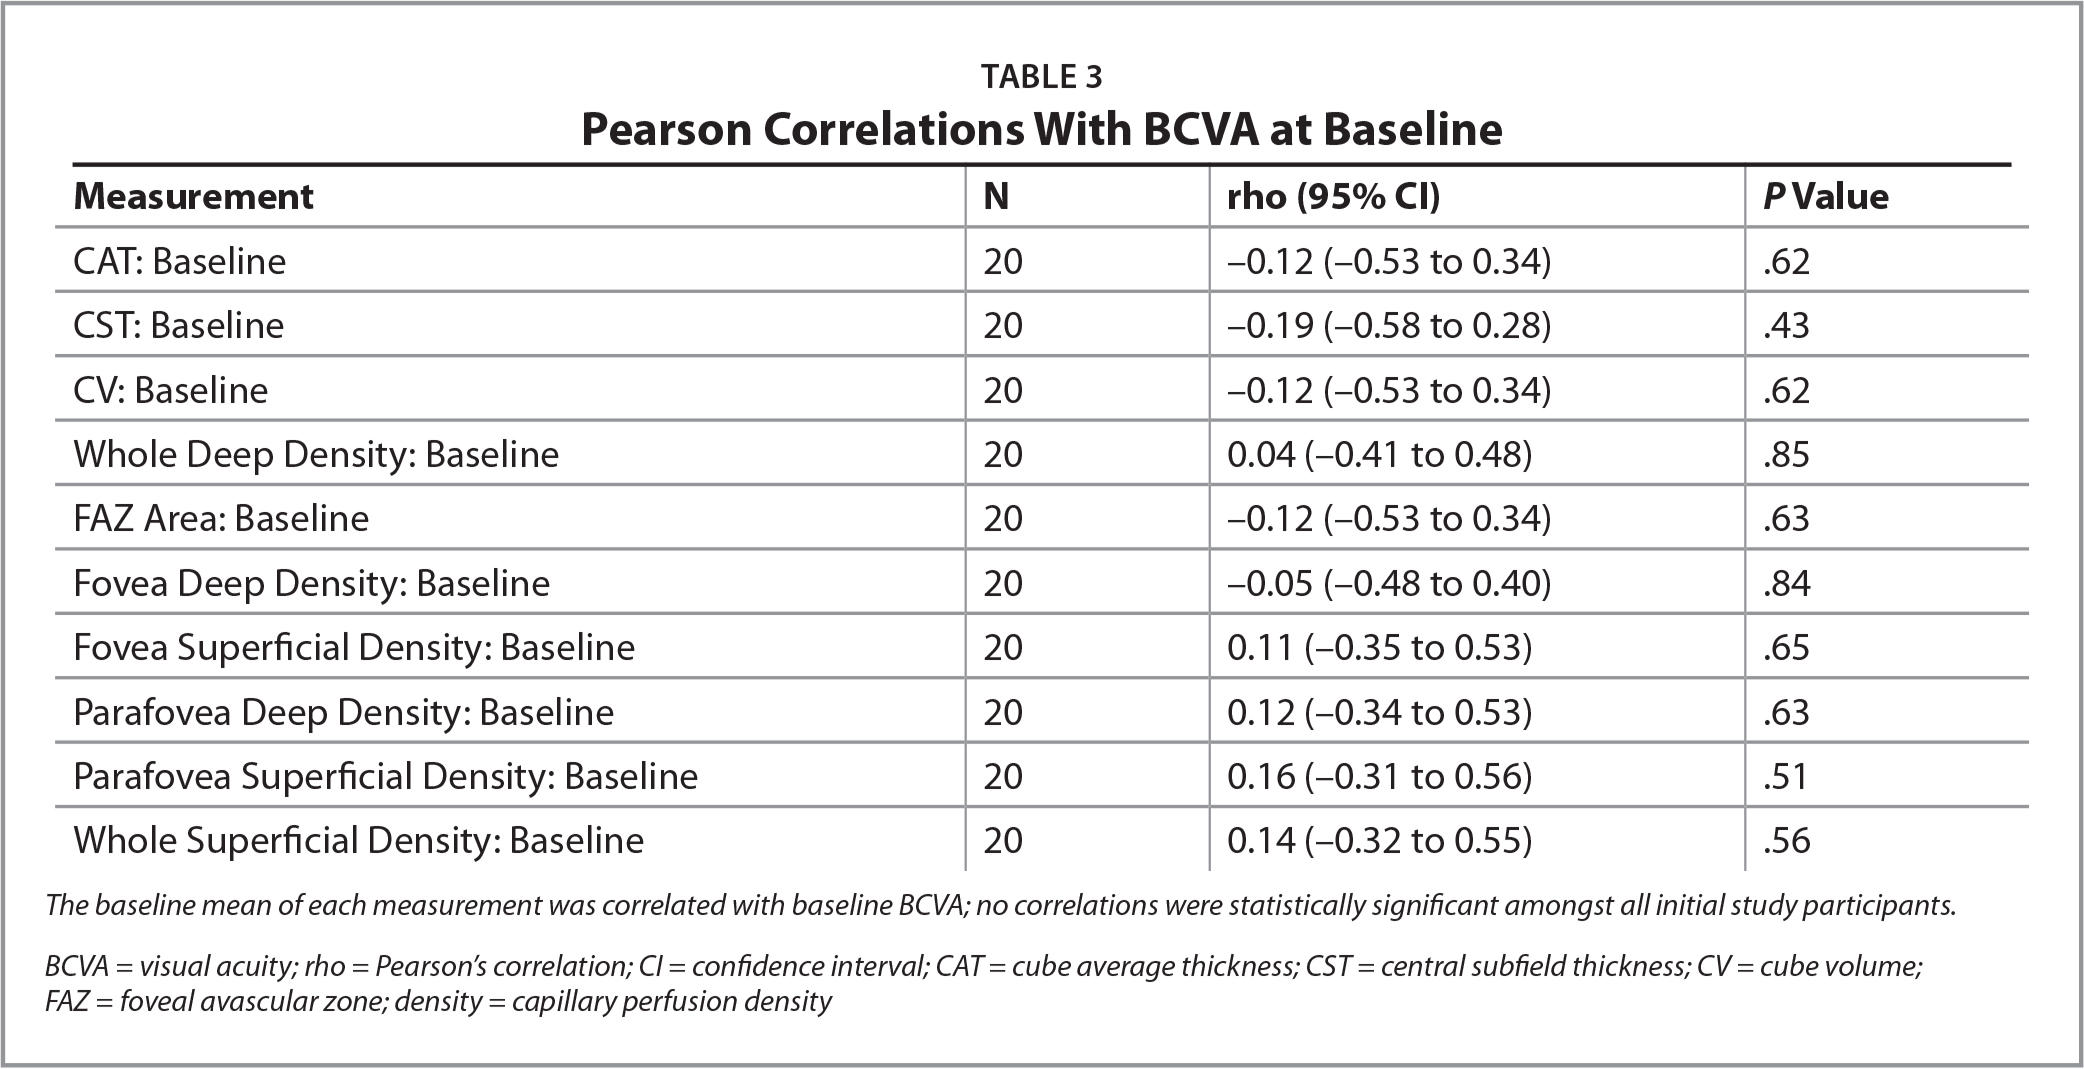 Pearson Correlations With BCVA at Baseline